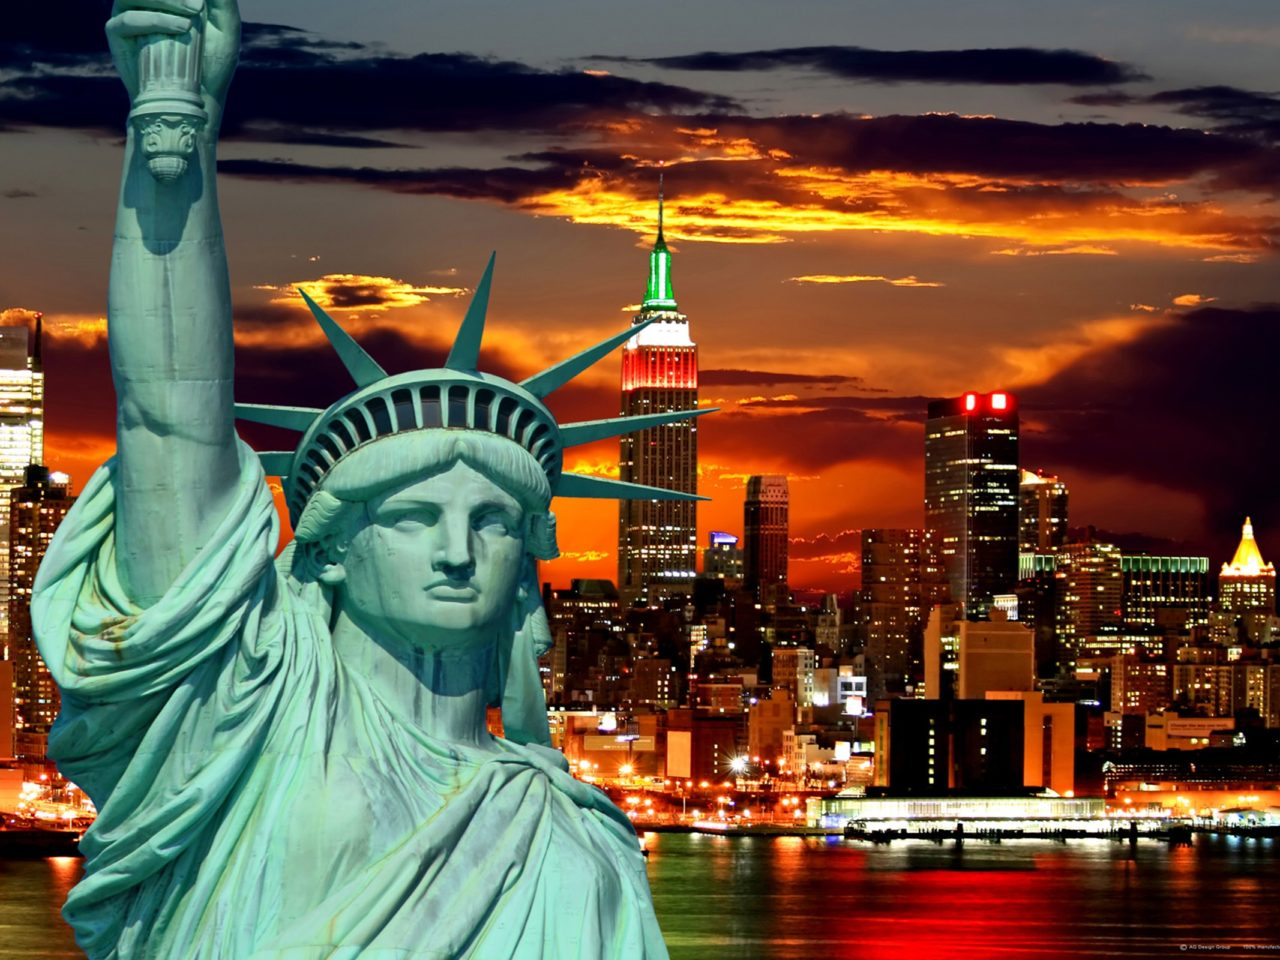 Free Christmas Wallpaper Iphone 4 New York City Statue Of Liberty Wallpaper Ftm 0812 1